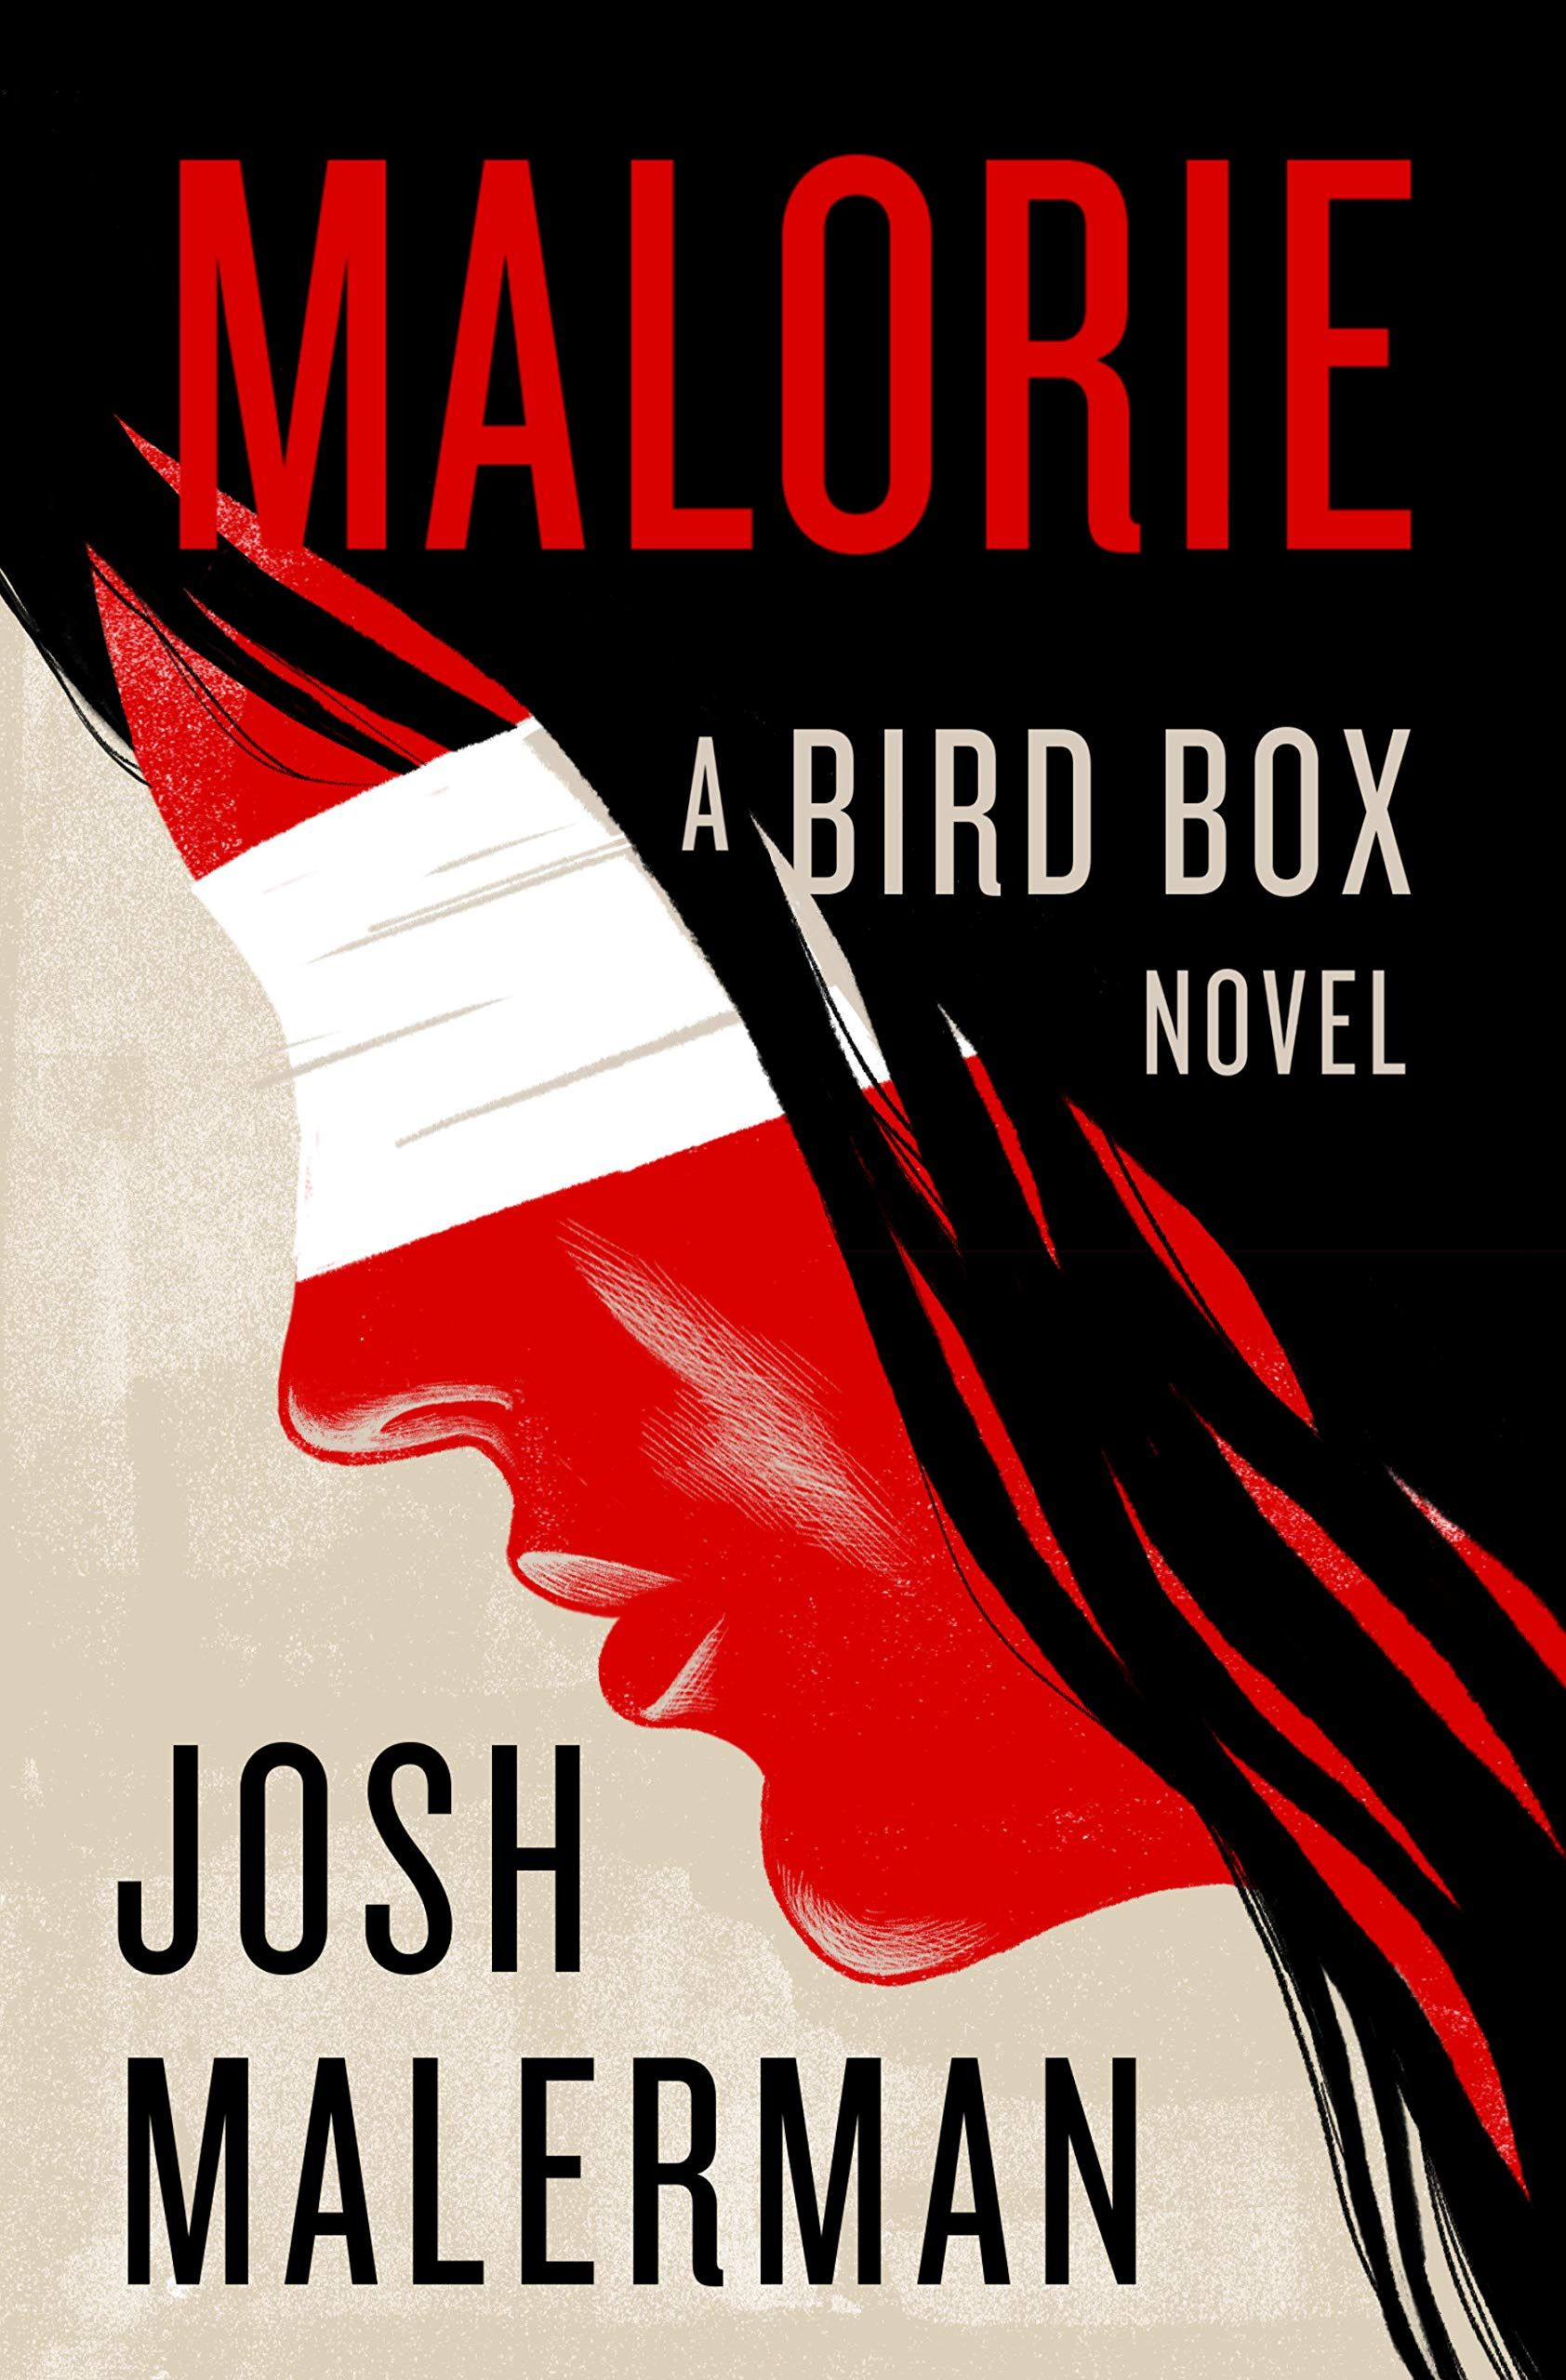 [PDF] Malorie (Bird Box #2) by Josh Malerman Book Download - Malorie Josh Malerman PDF - Malorie Josh Malerman Epub - Malorie Josh Malerman Read Online - Malorie Josh Malerman PDF Download - Malorie Josh Malerman Audiobook - Malorie Josh Malerman Read Online Free - Malorie Josh Malerman Free Download - Malorie Josh Malerman PDF Free Download - Malorie Josh Malerman Free Online